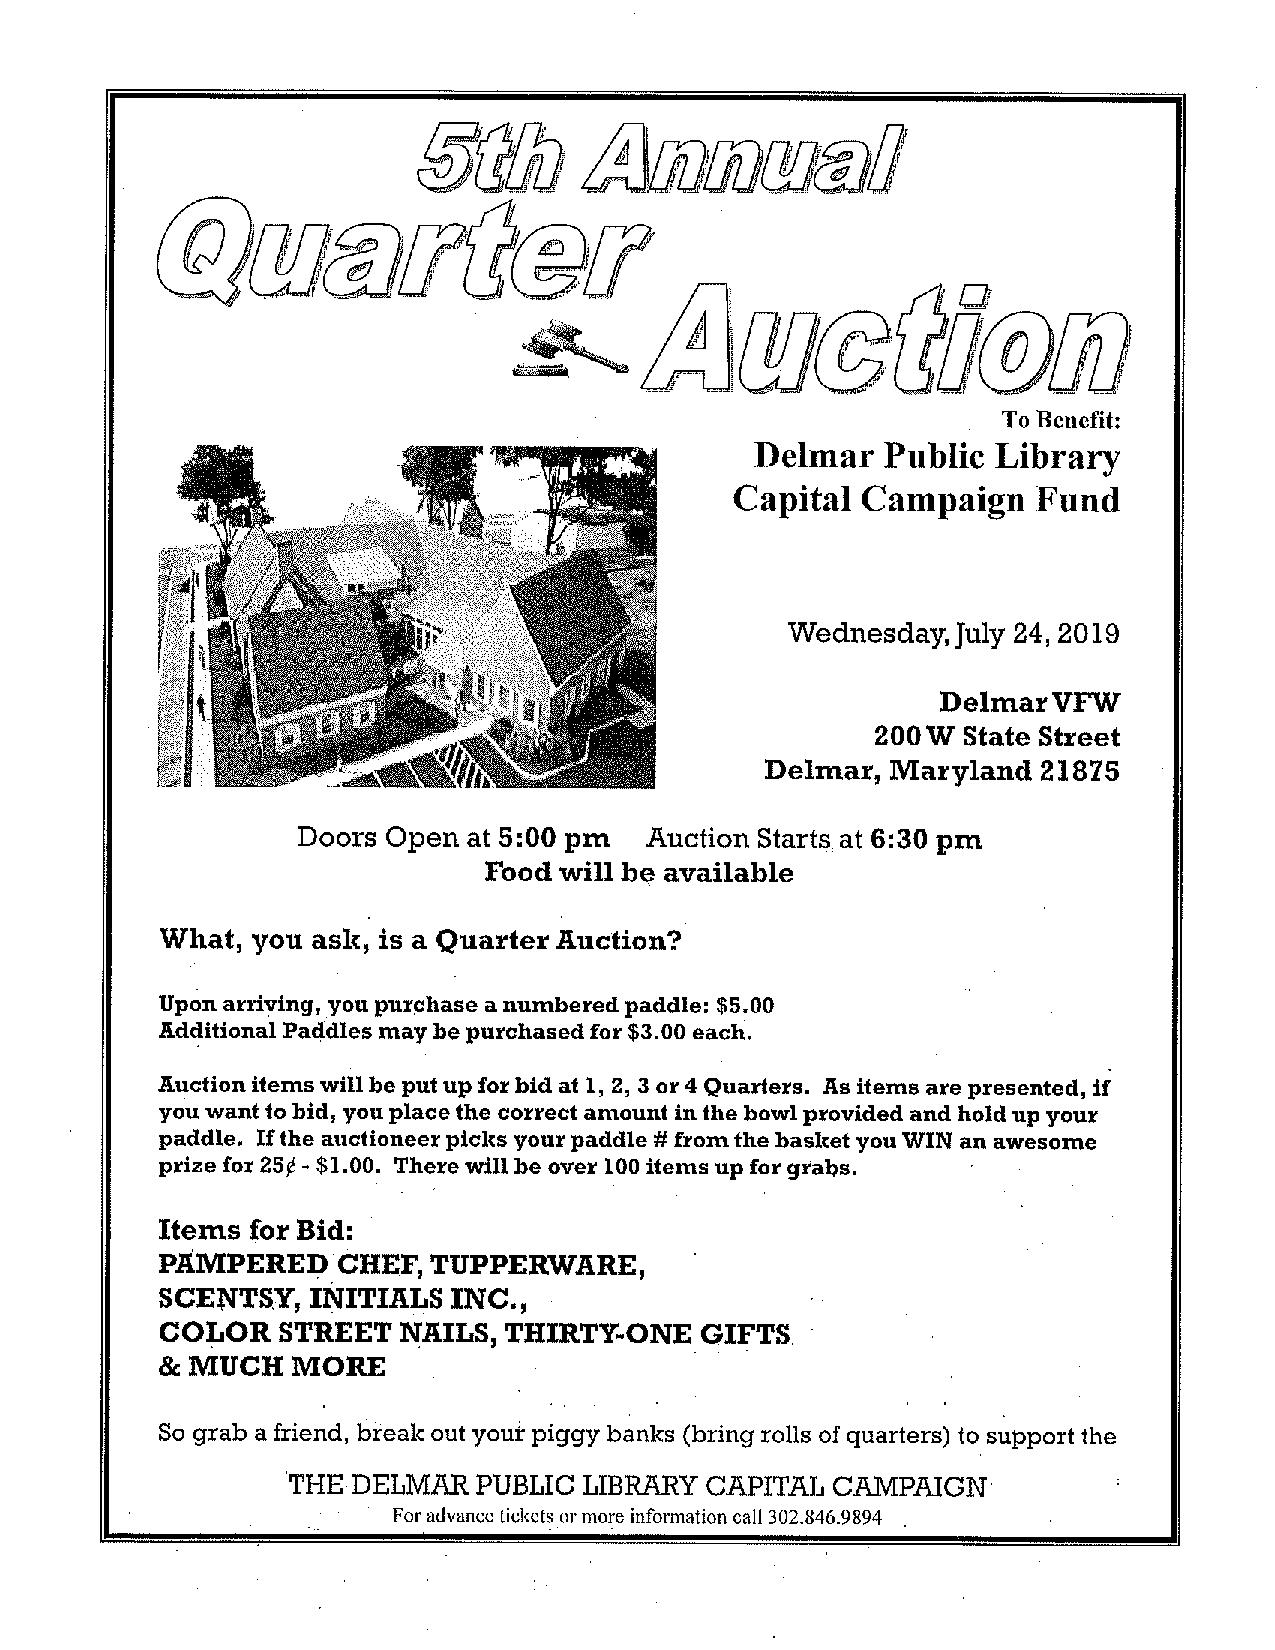 FUNDRAISER: Quarter Auction